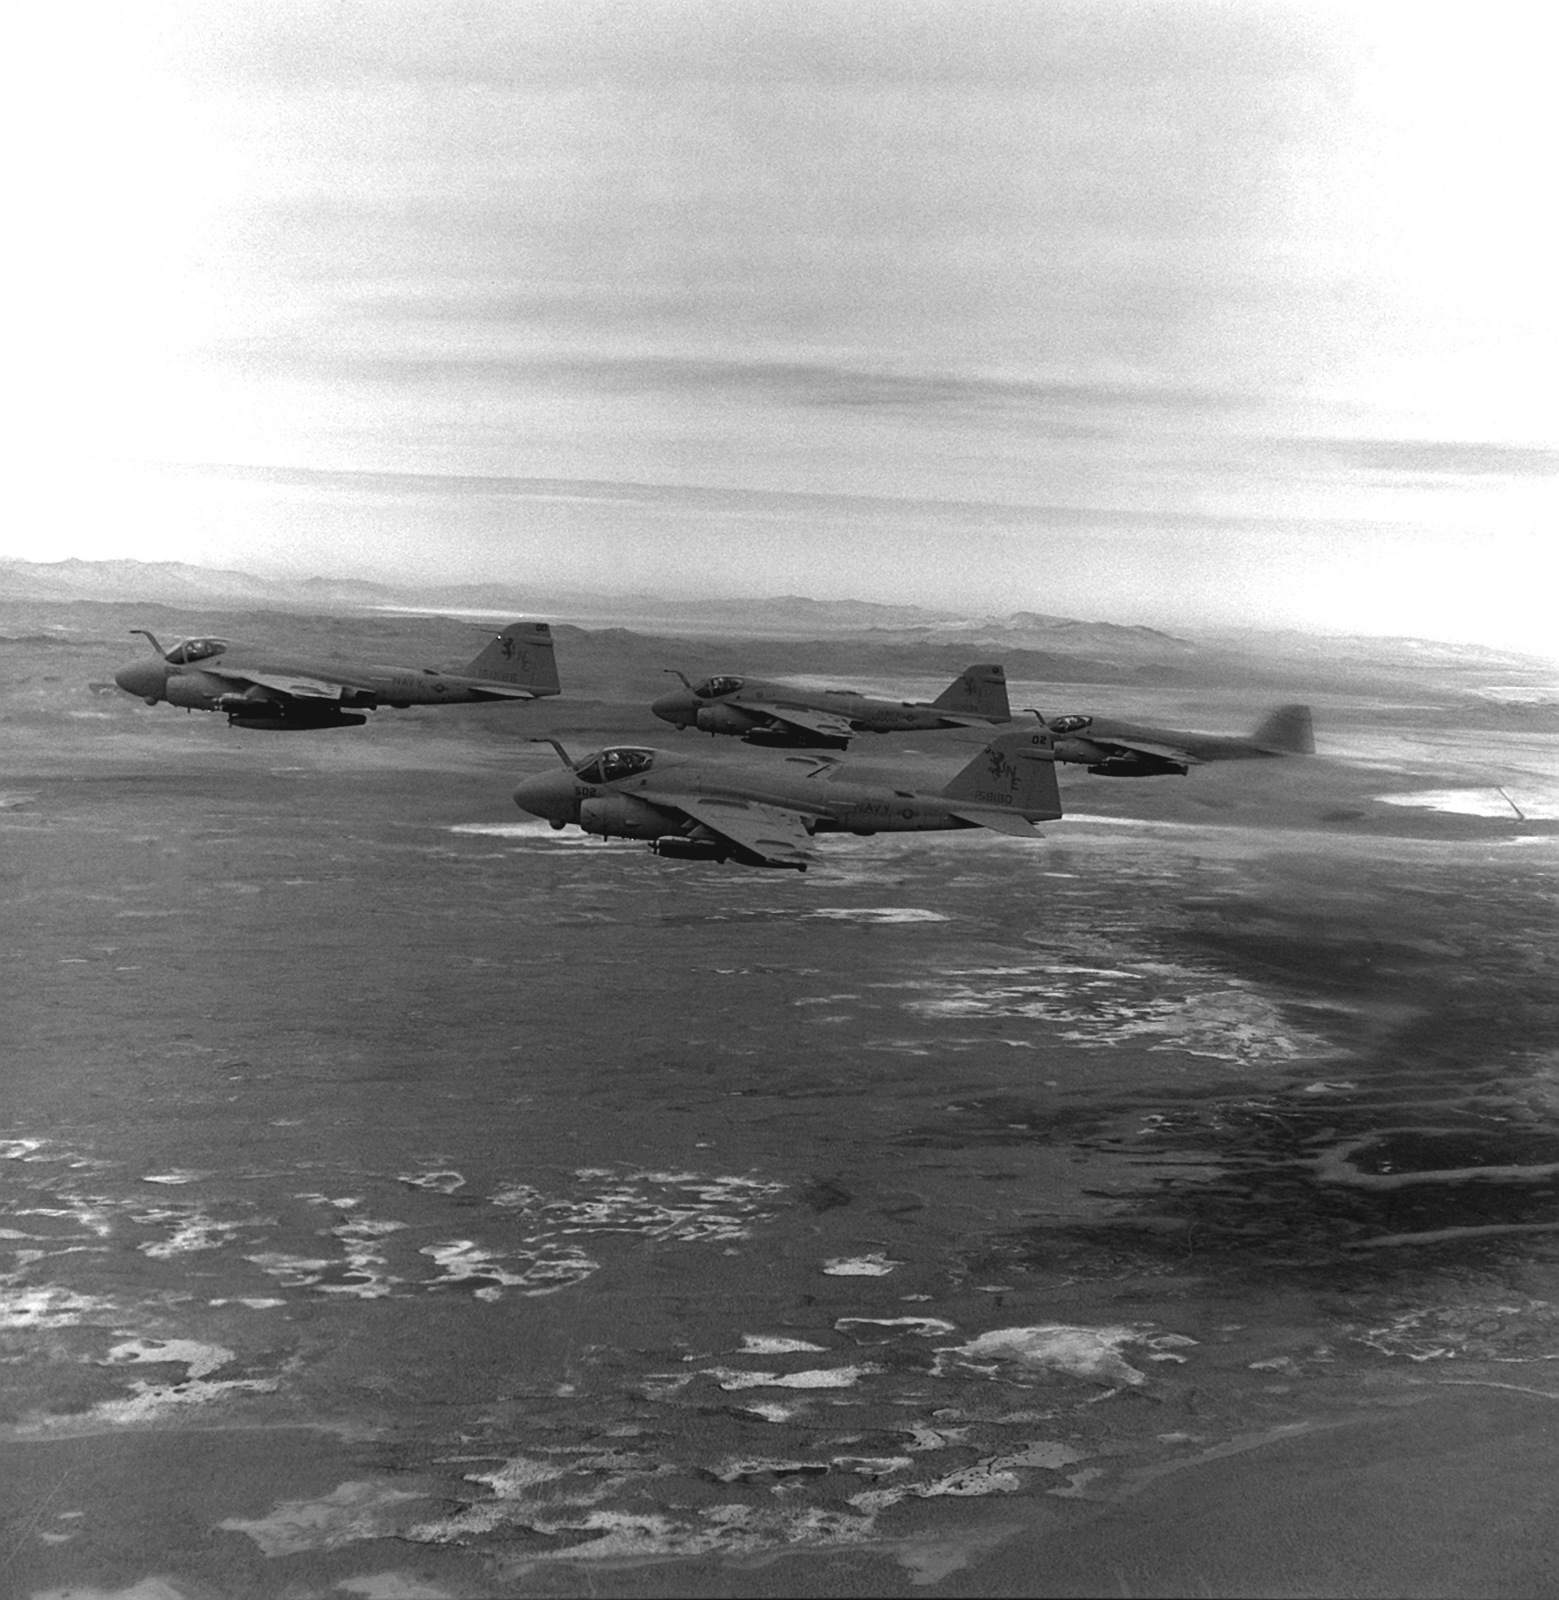 Loaded with Mark 82 500-pound bombs, four A-6E Intruder aircraft of Attack Squadron 145 (VA-145) fly to their target during a strike training mission